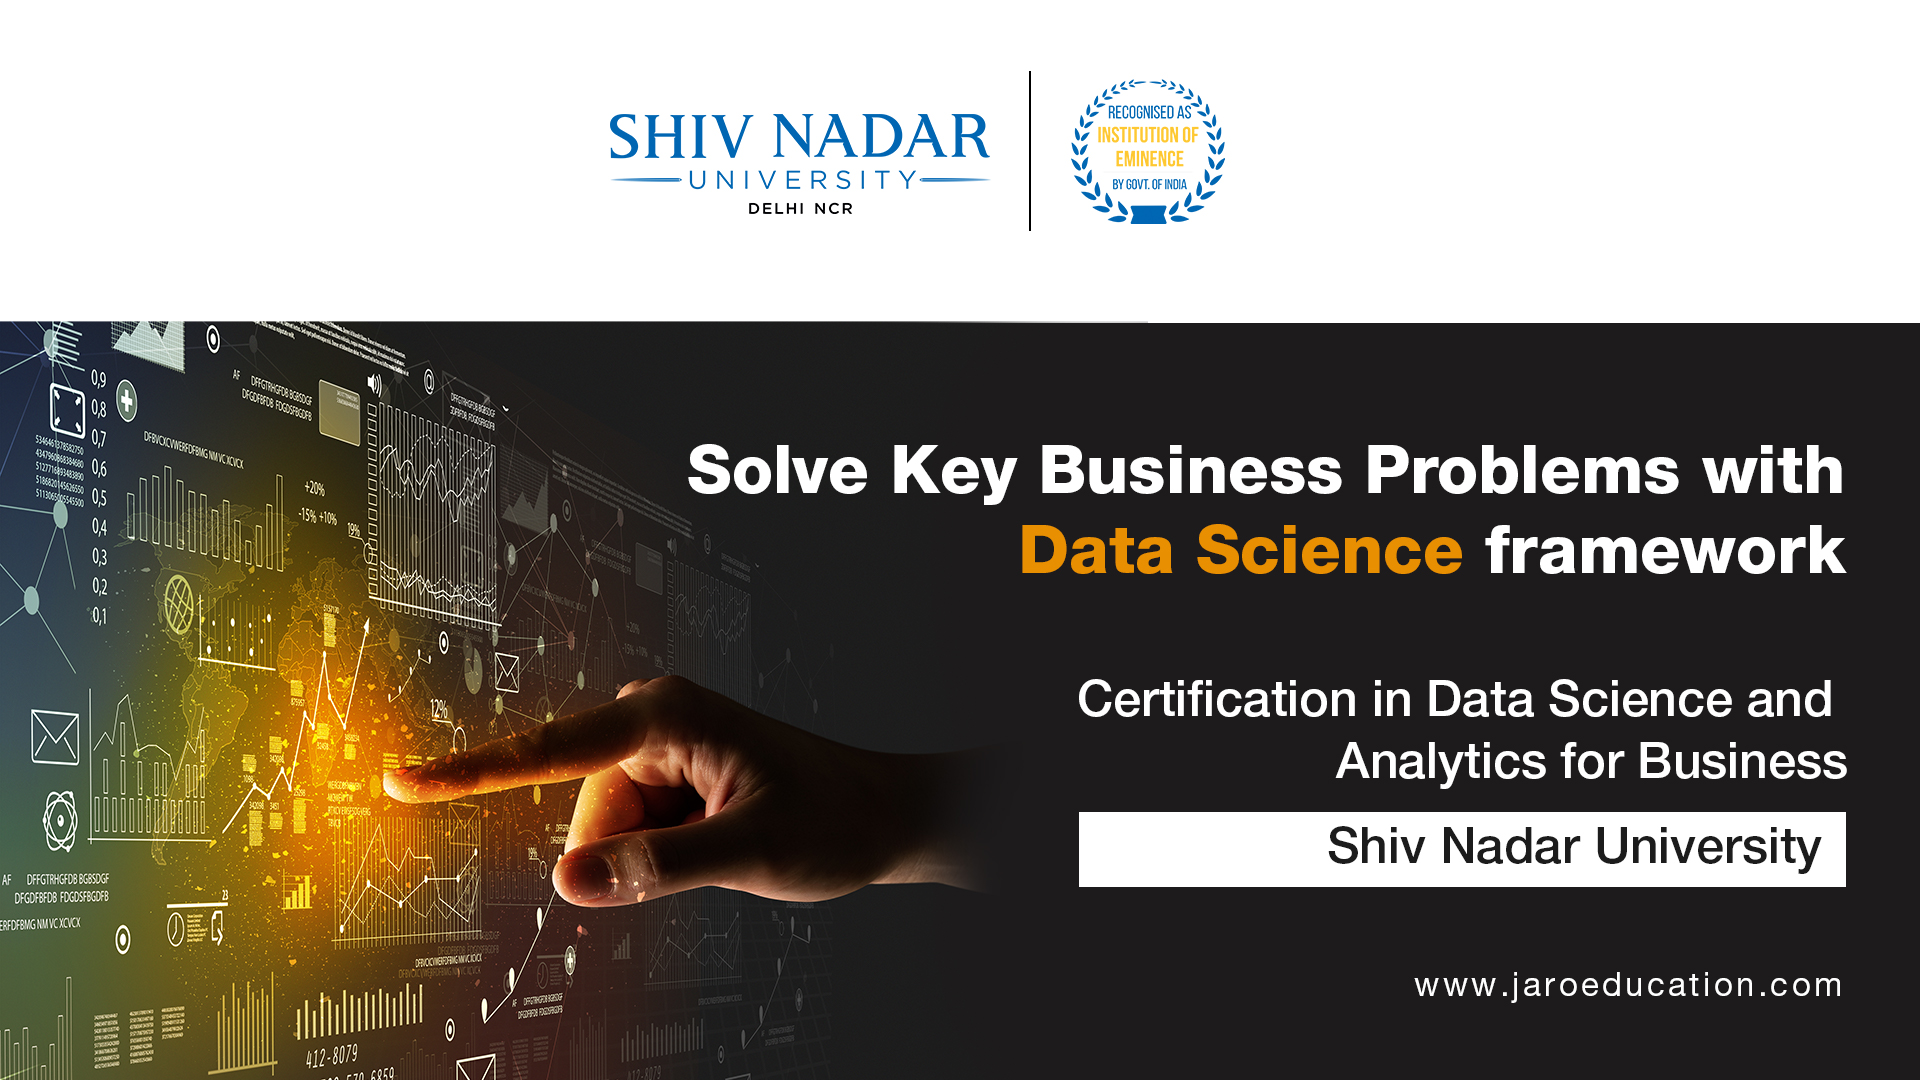 Certificate in Data Science and Analytics for Business - Shiv Nadar University